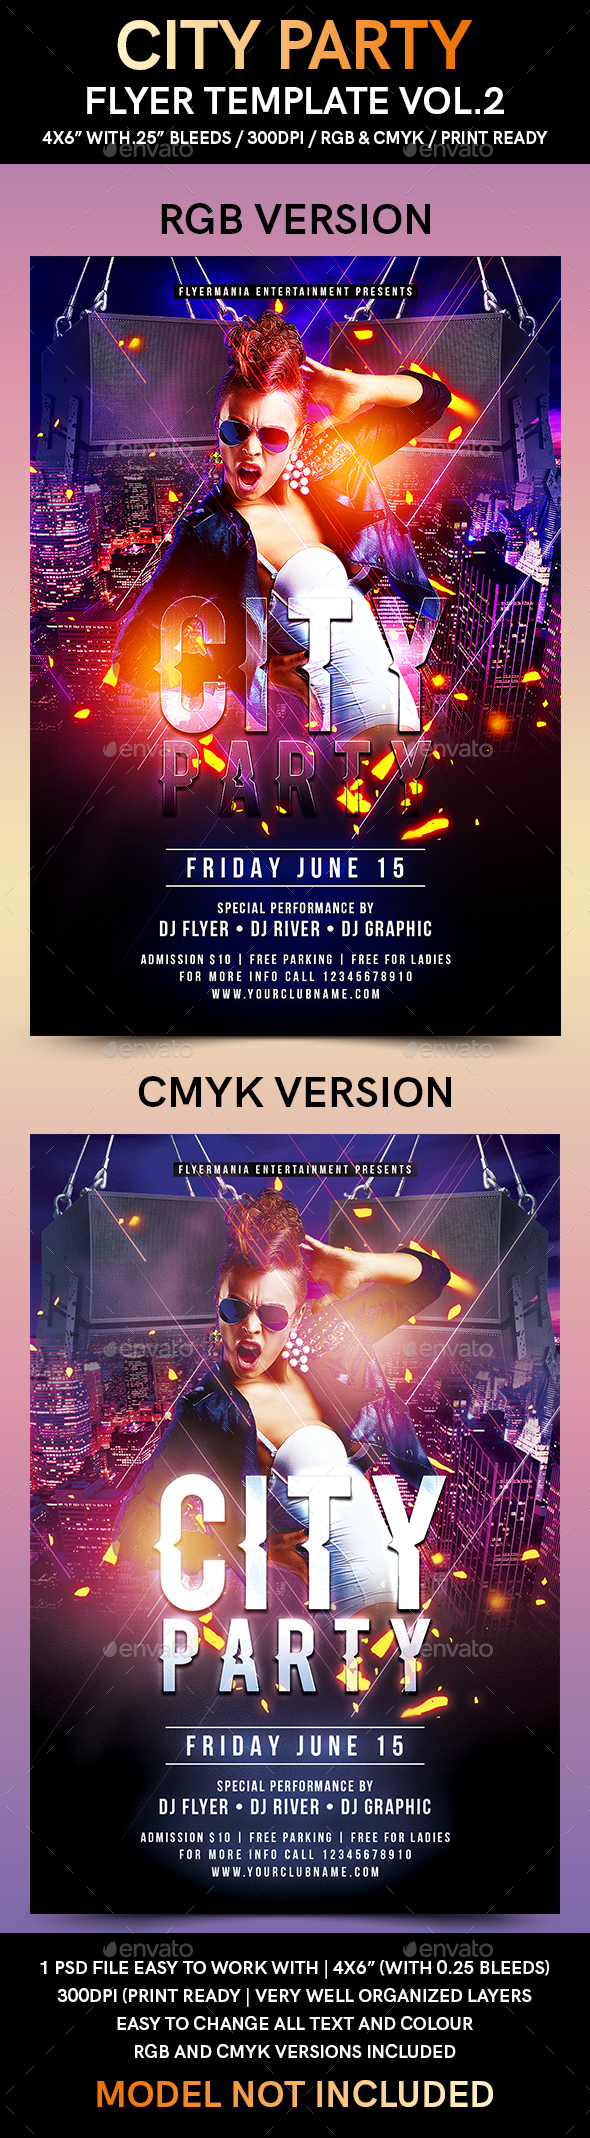 City Party Flyer Template Vol.2 - Flyers Print Templates